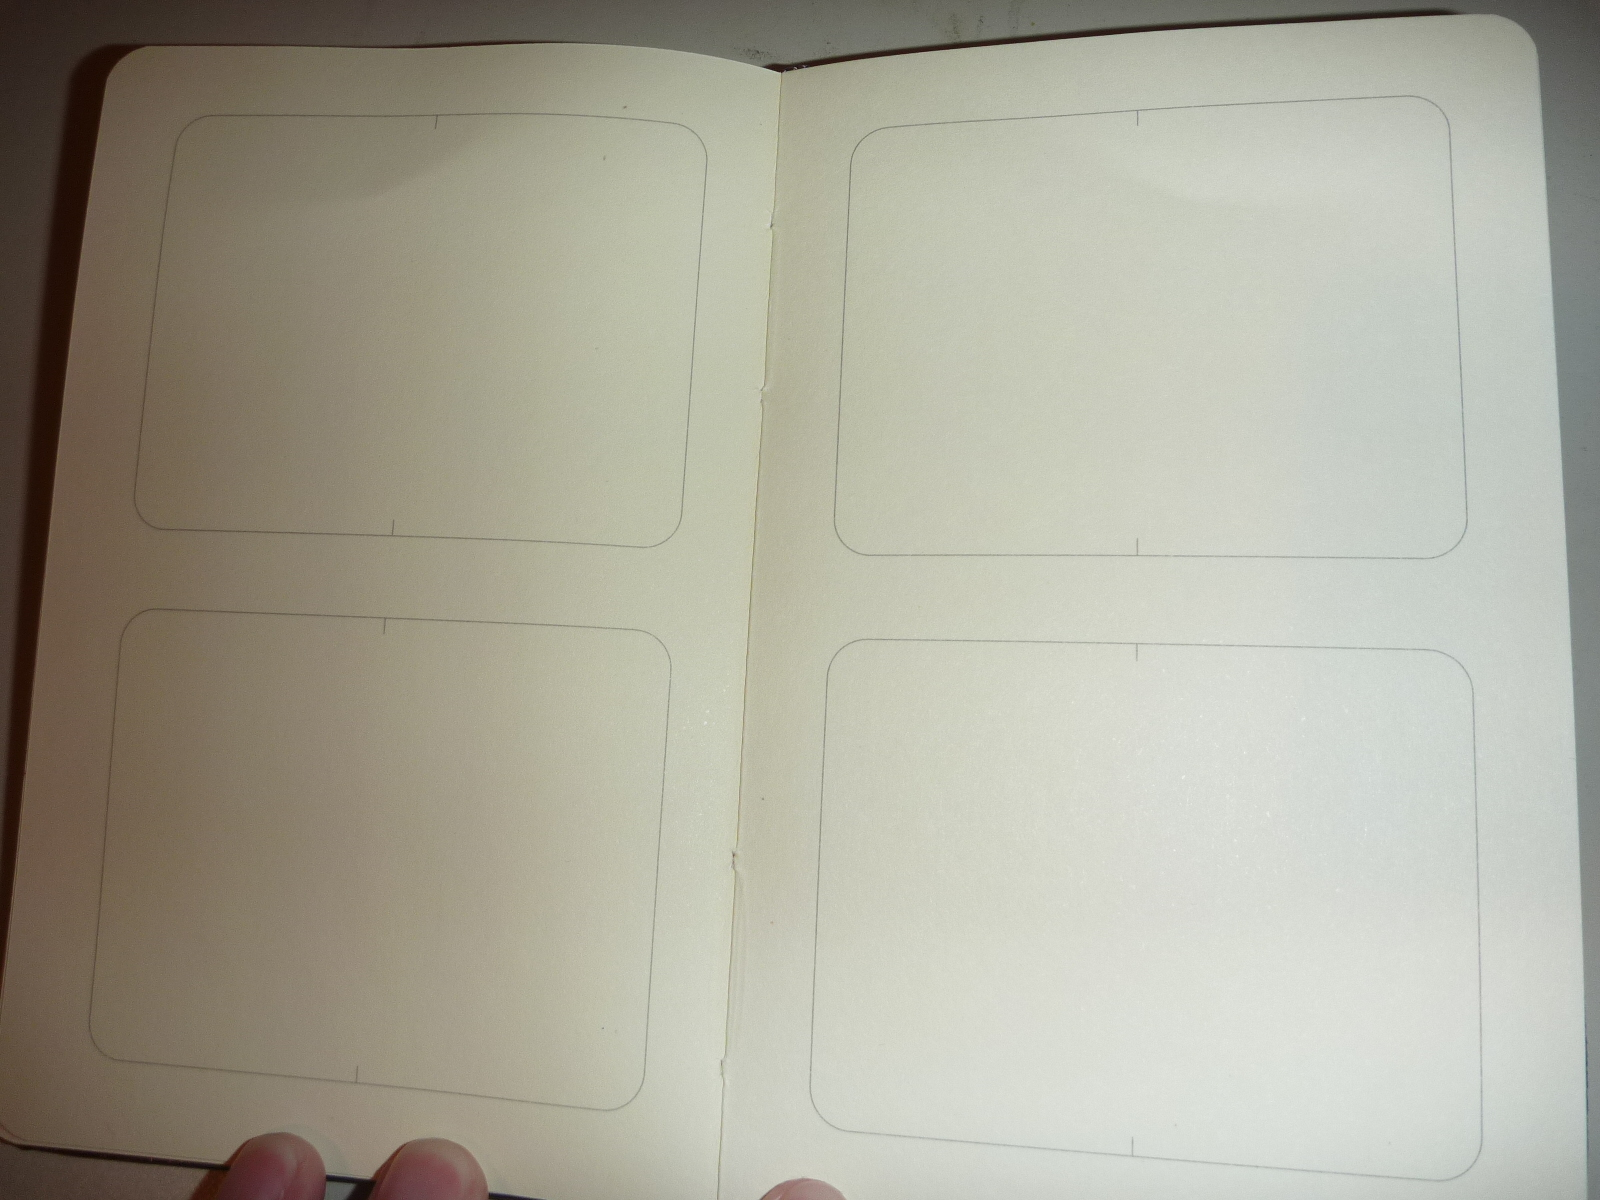 ethereal voices story art progress blog review moleskine pocket the notebook came in two sections two large rectangles on one page